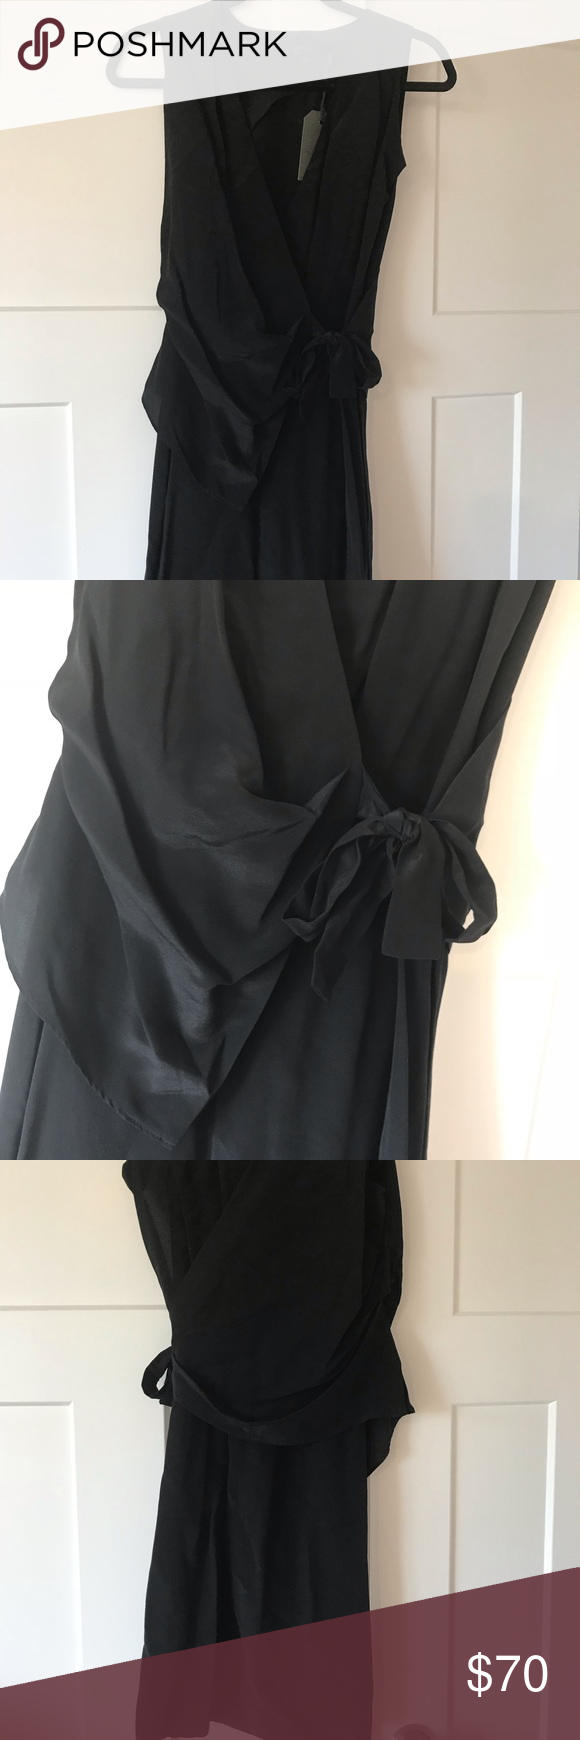 67d575b098e All Saints black wrap dress Never been worn. Center wrap that drapes from  the front